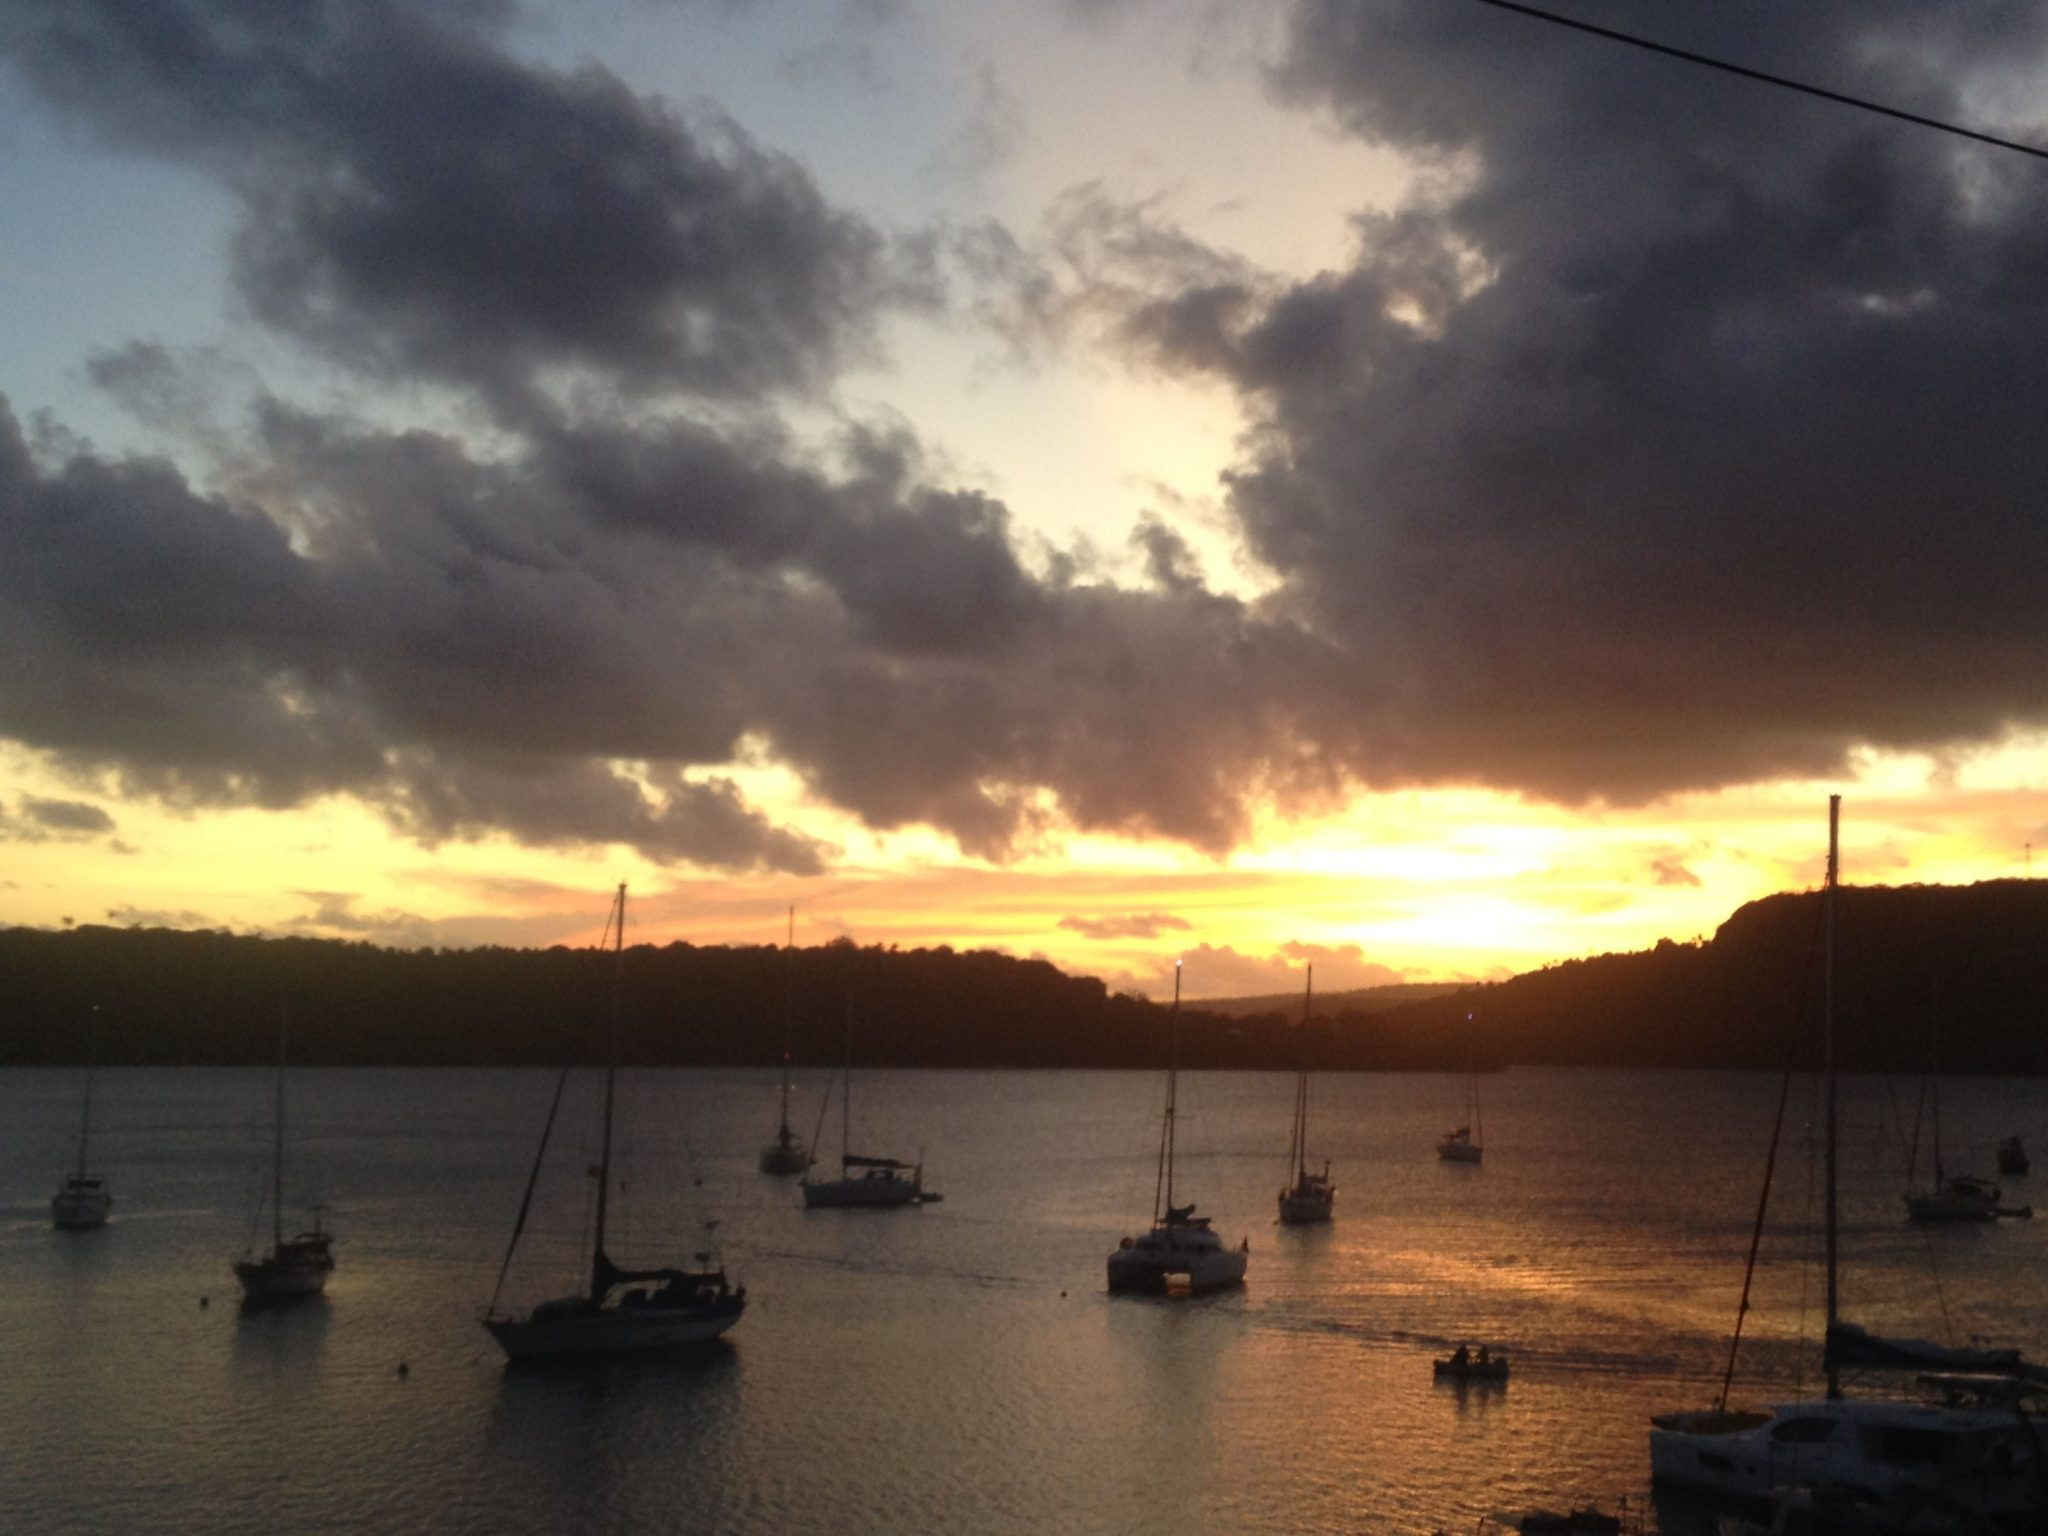 24. An amazing sunset over Neiafu harbor